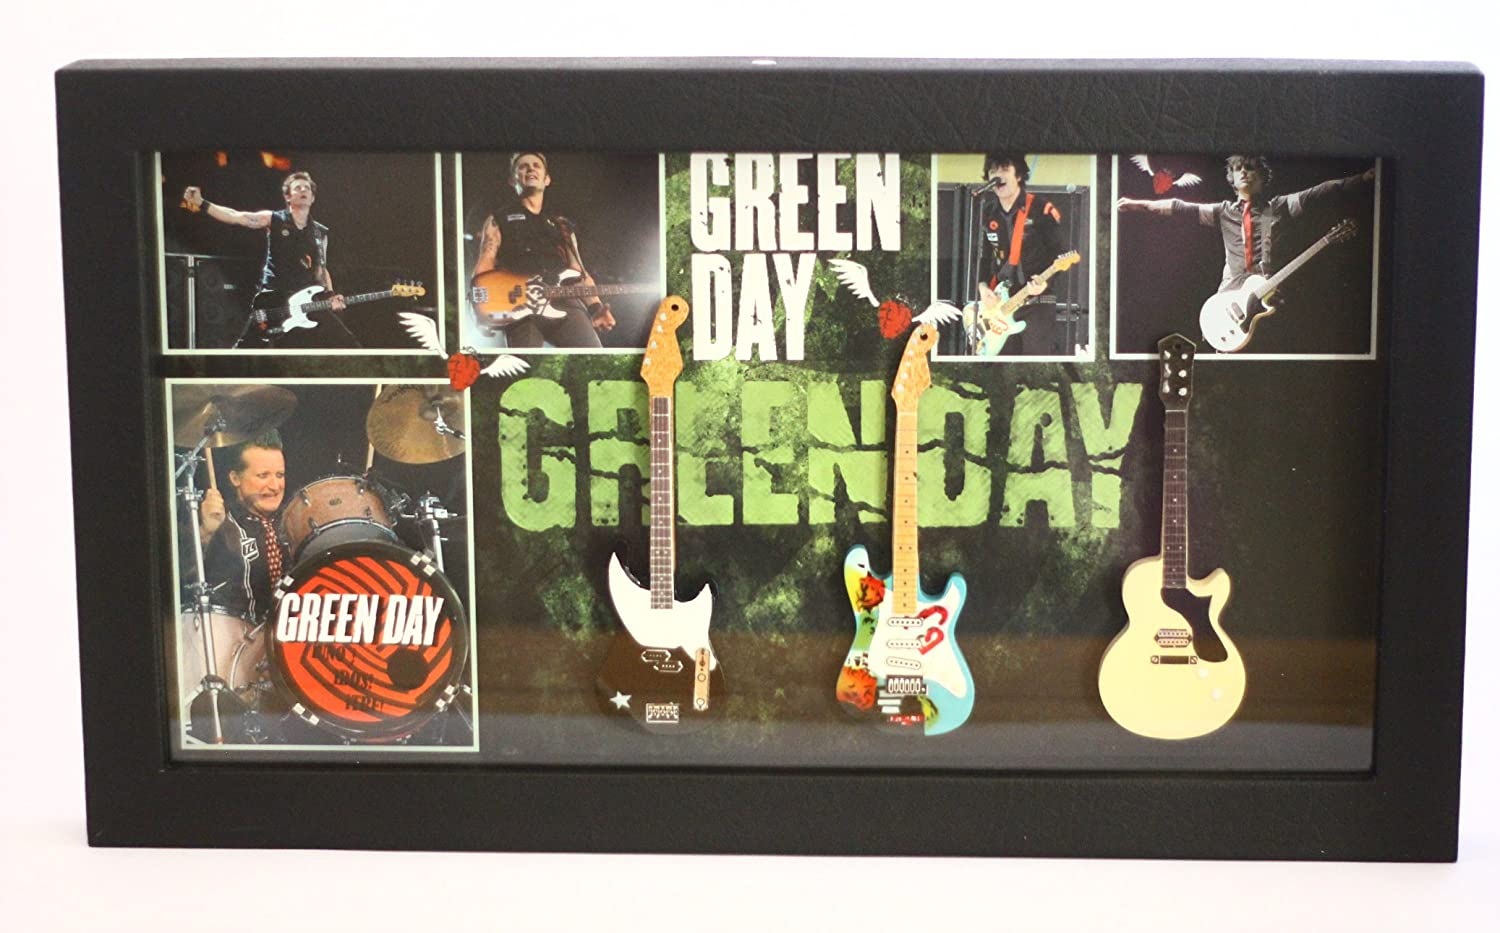 rgm802 Green Day miniatura Guitar Collection in Shadowbox Frame